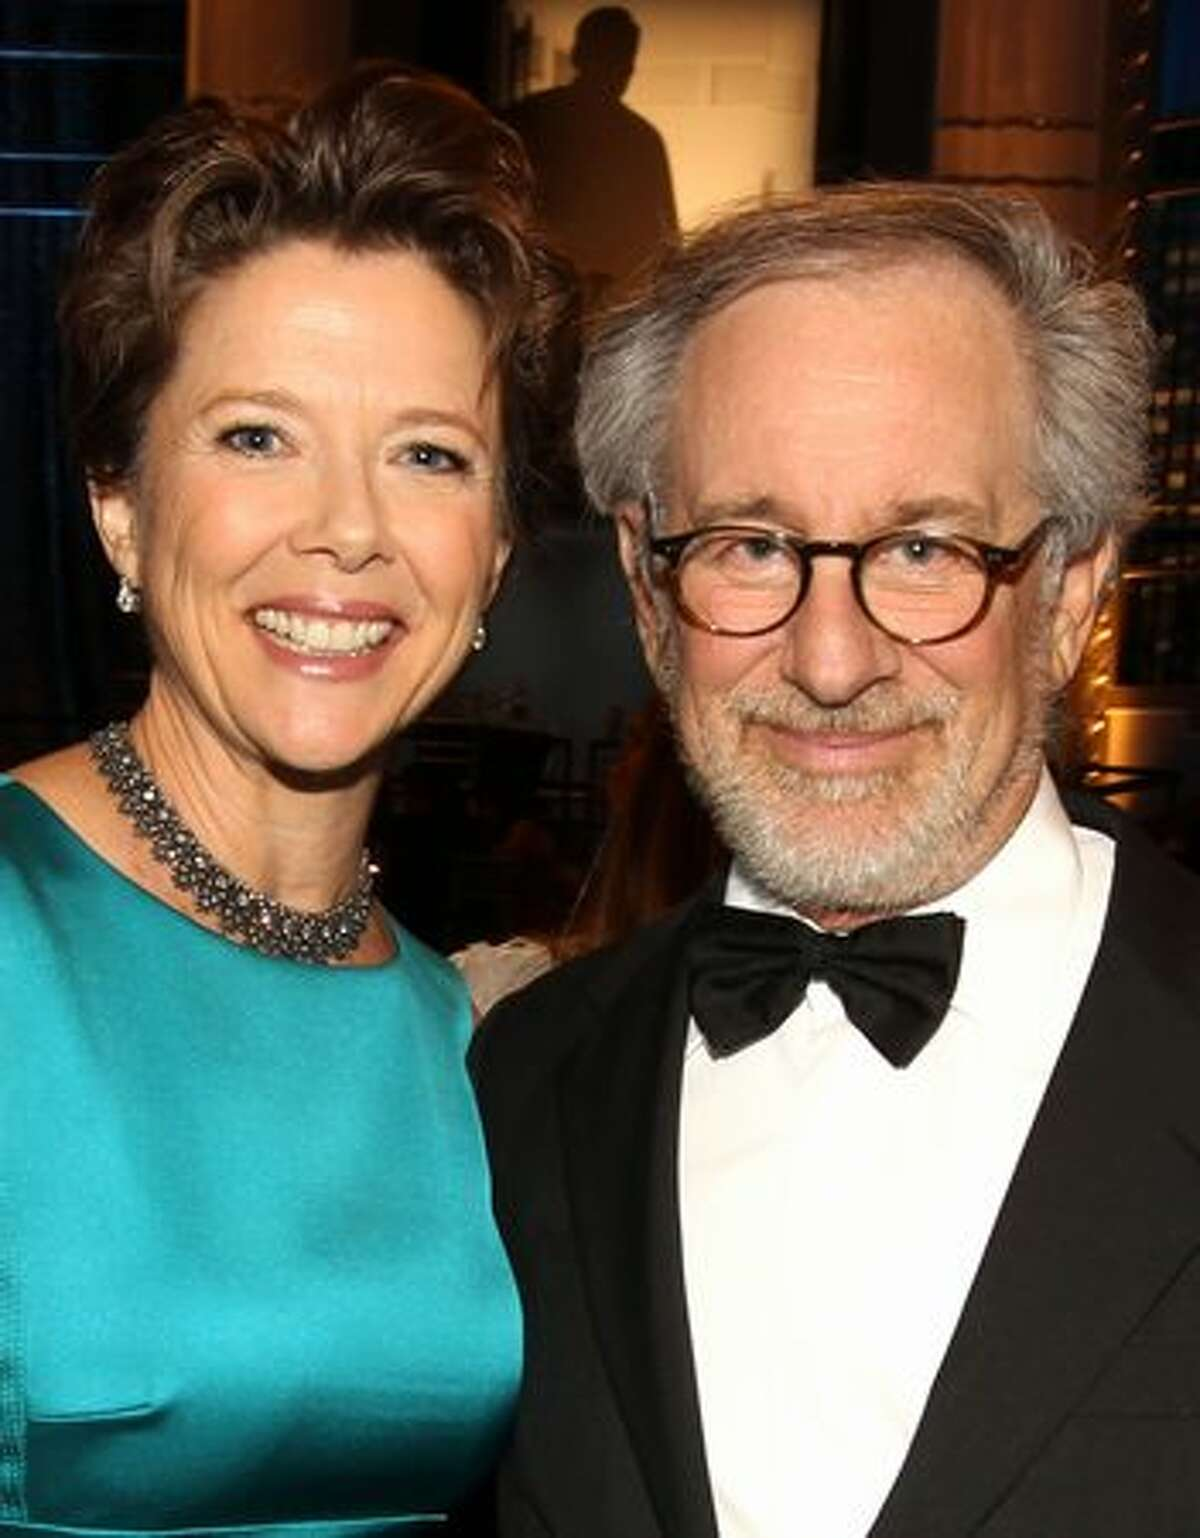 Actress Annette Bening (L) and Director Steven Spielberg the audience during the 38th AFI Life Achievement Award honoring Mike Nichols held at Sony Pictures Studios.